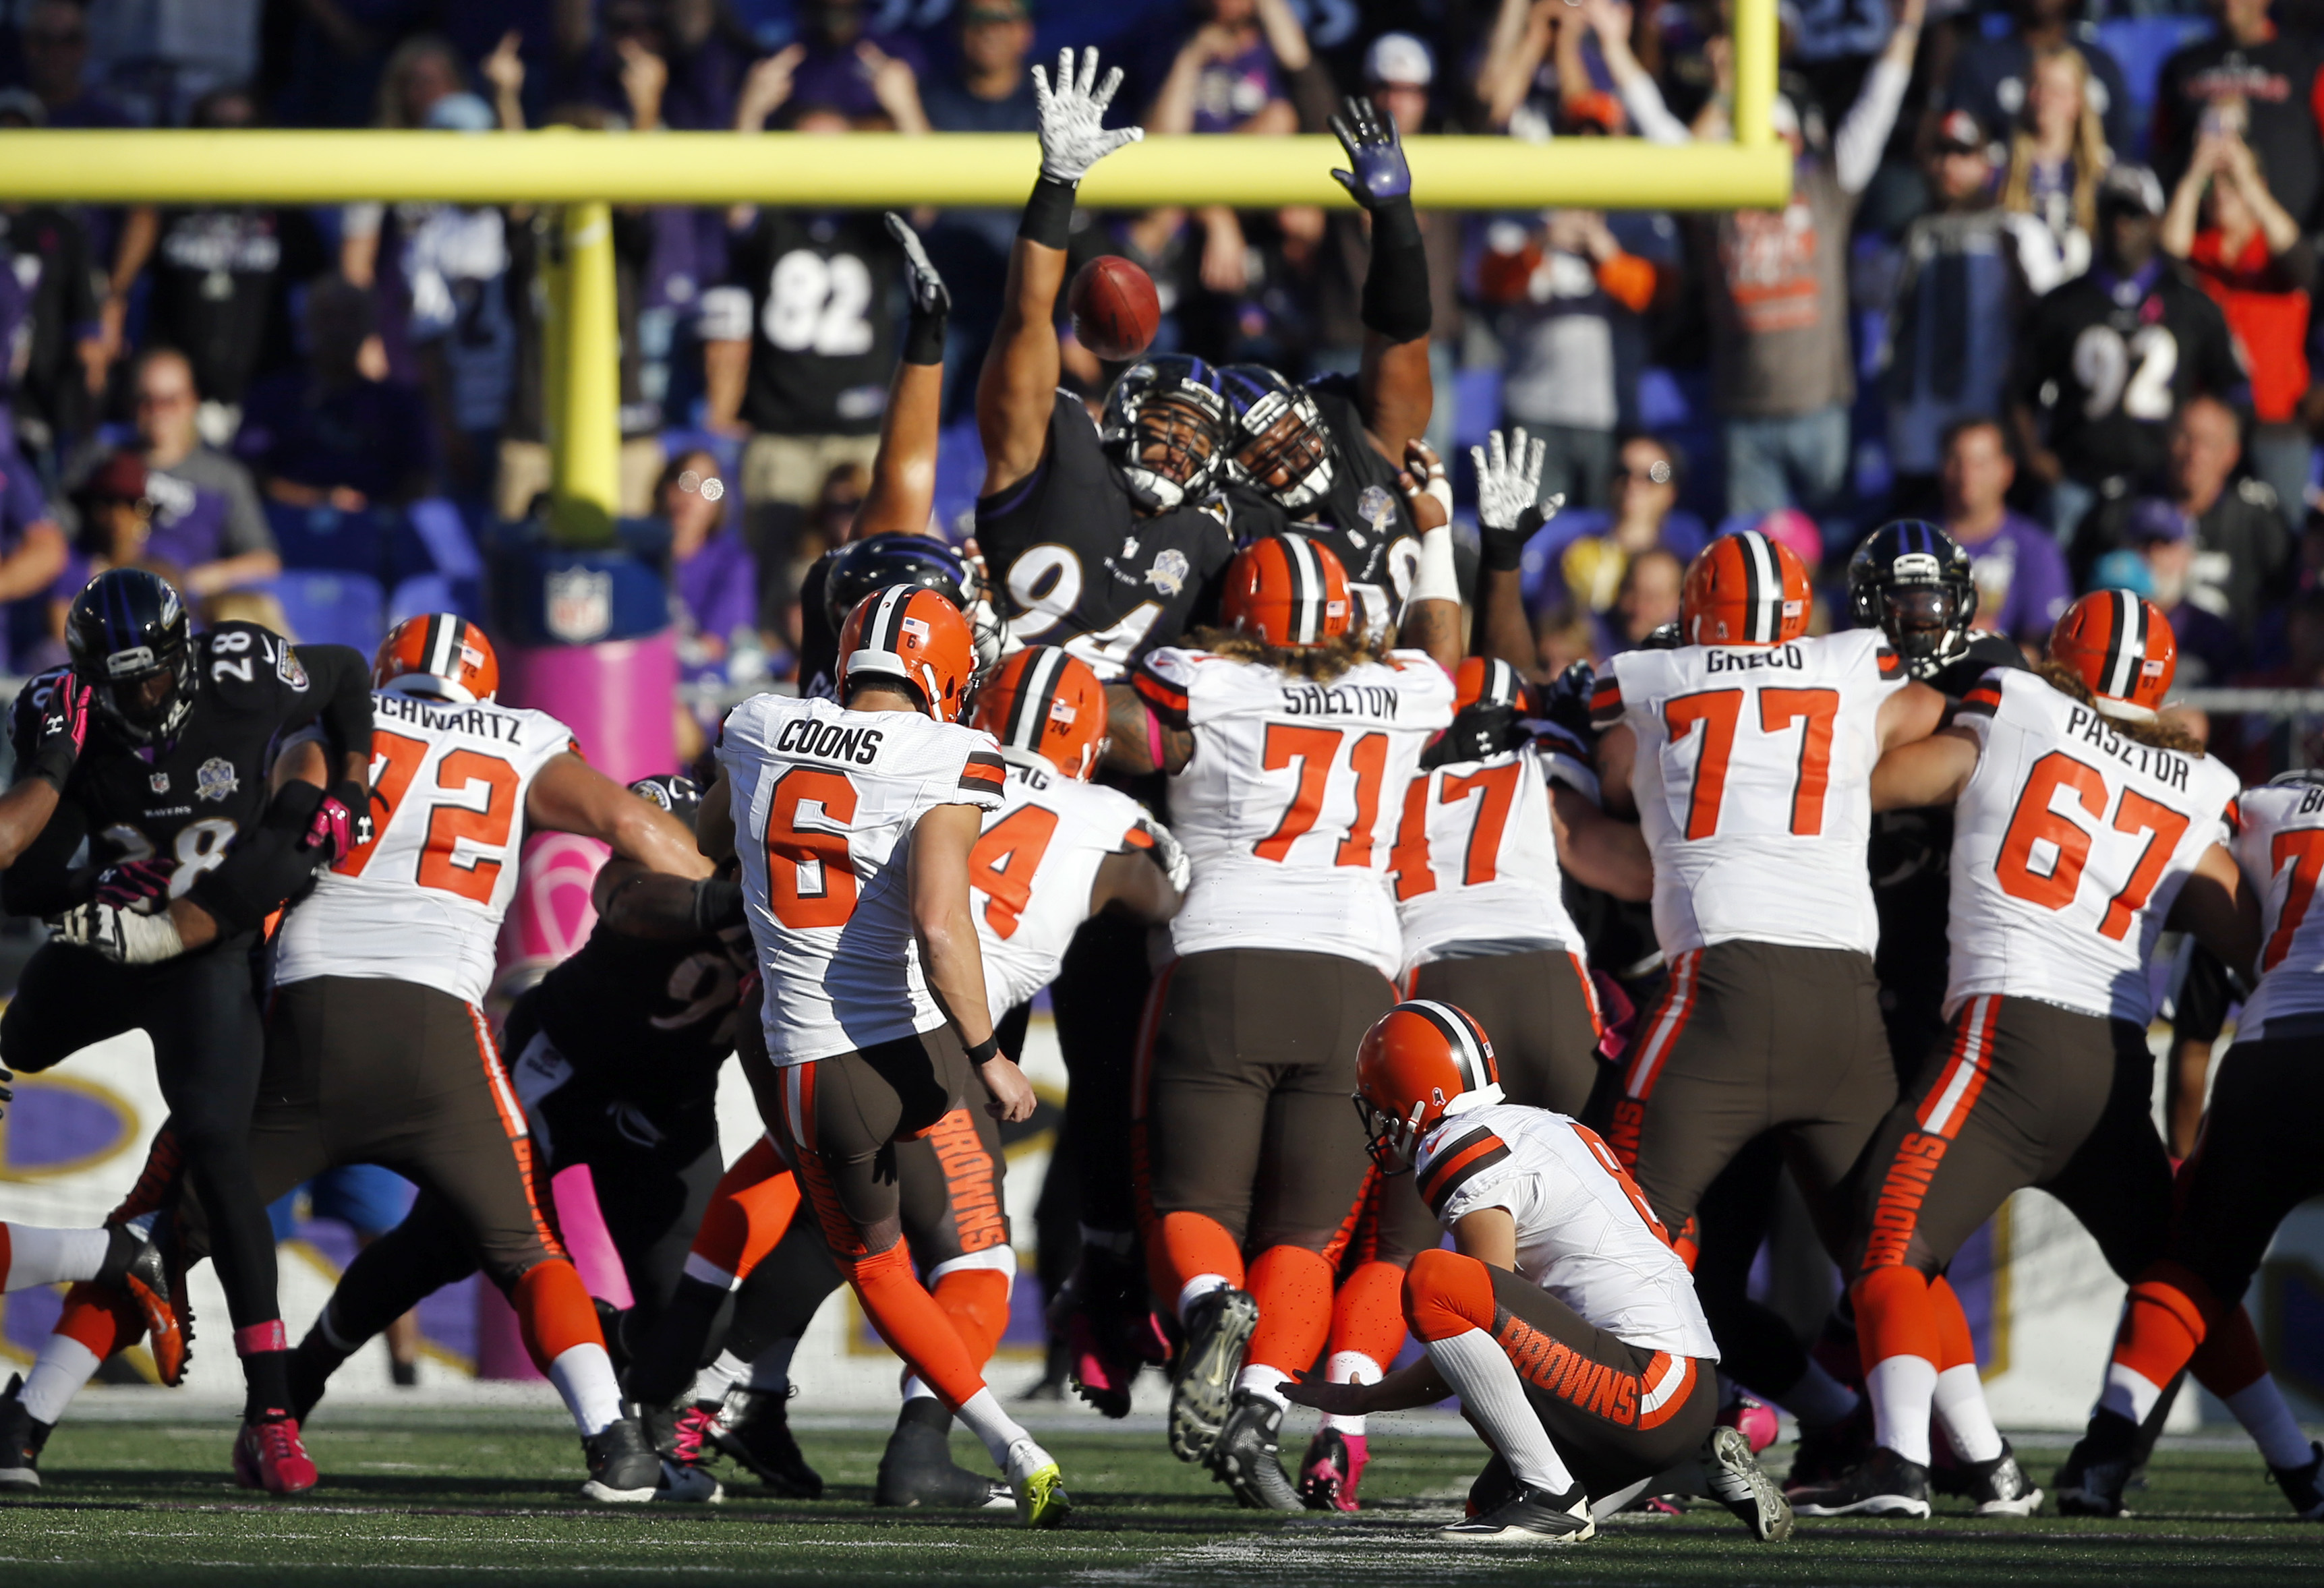 Cleveland Browns kicker Travis Coons (6) kicks a game-winning field goal in overtime of an NFL football game against the Baltimore Ravens, Sunday, Oct. 11, 2015, in Baltimore. Cleveland won 33-30. (AP Photo/Patrick Semansky)